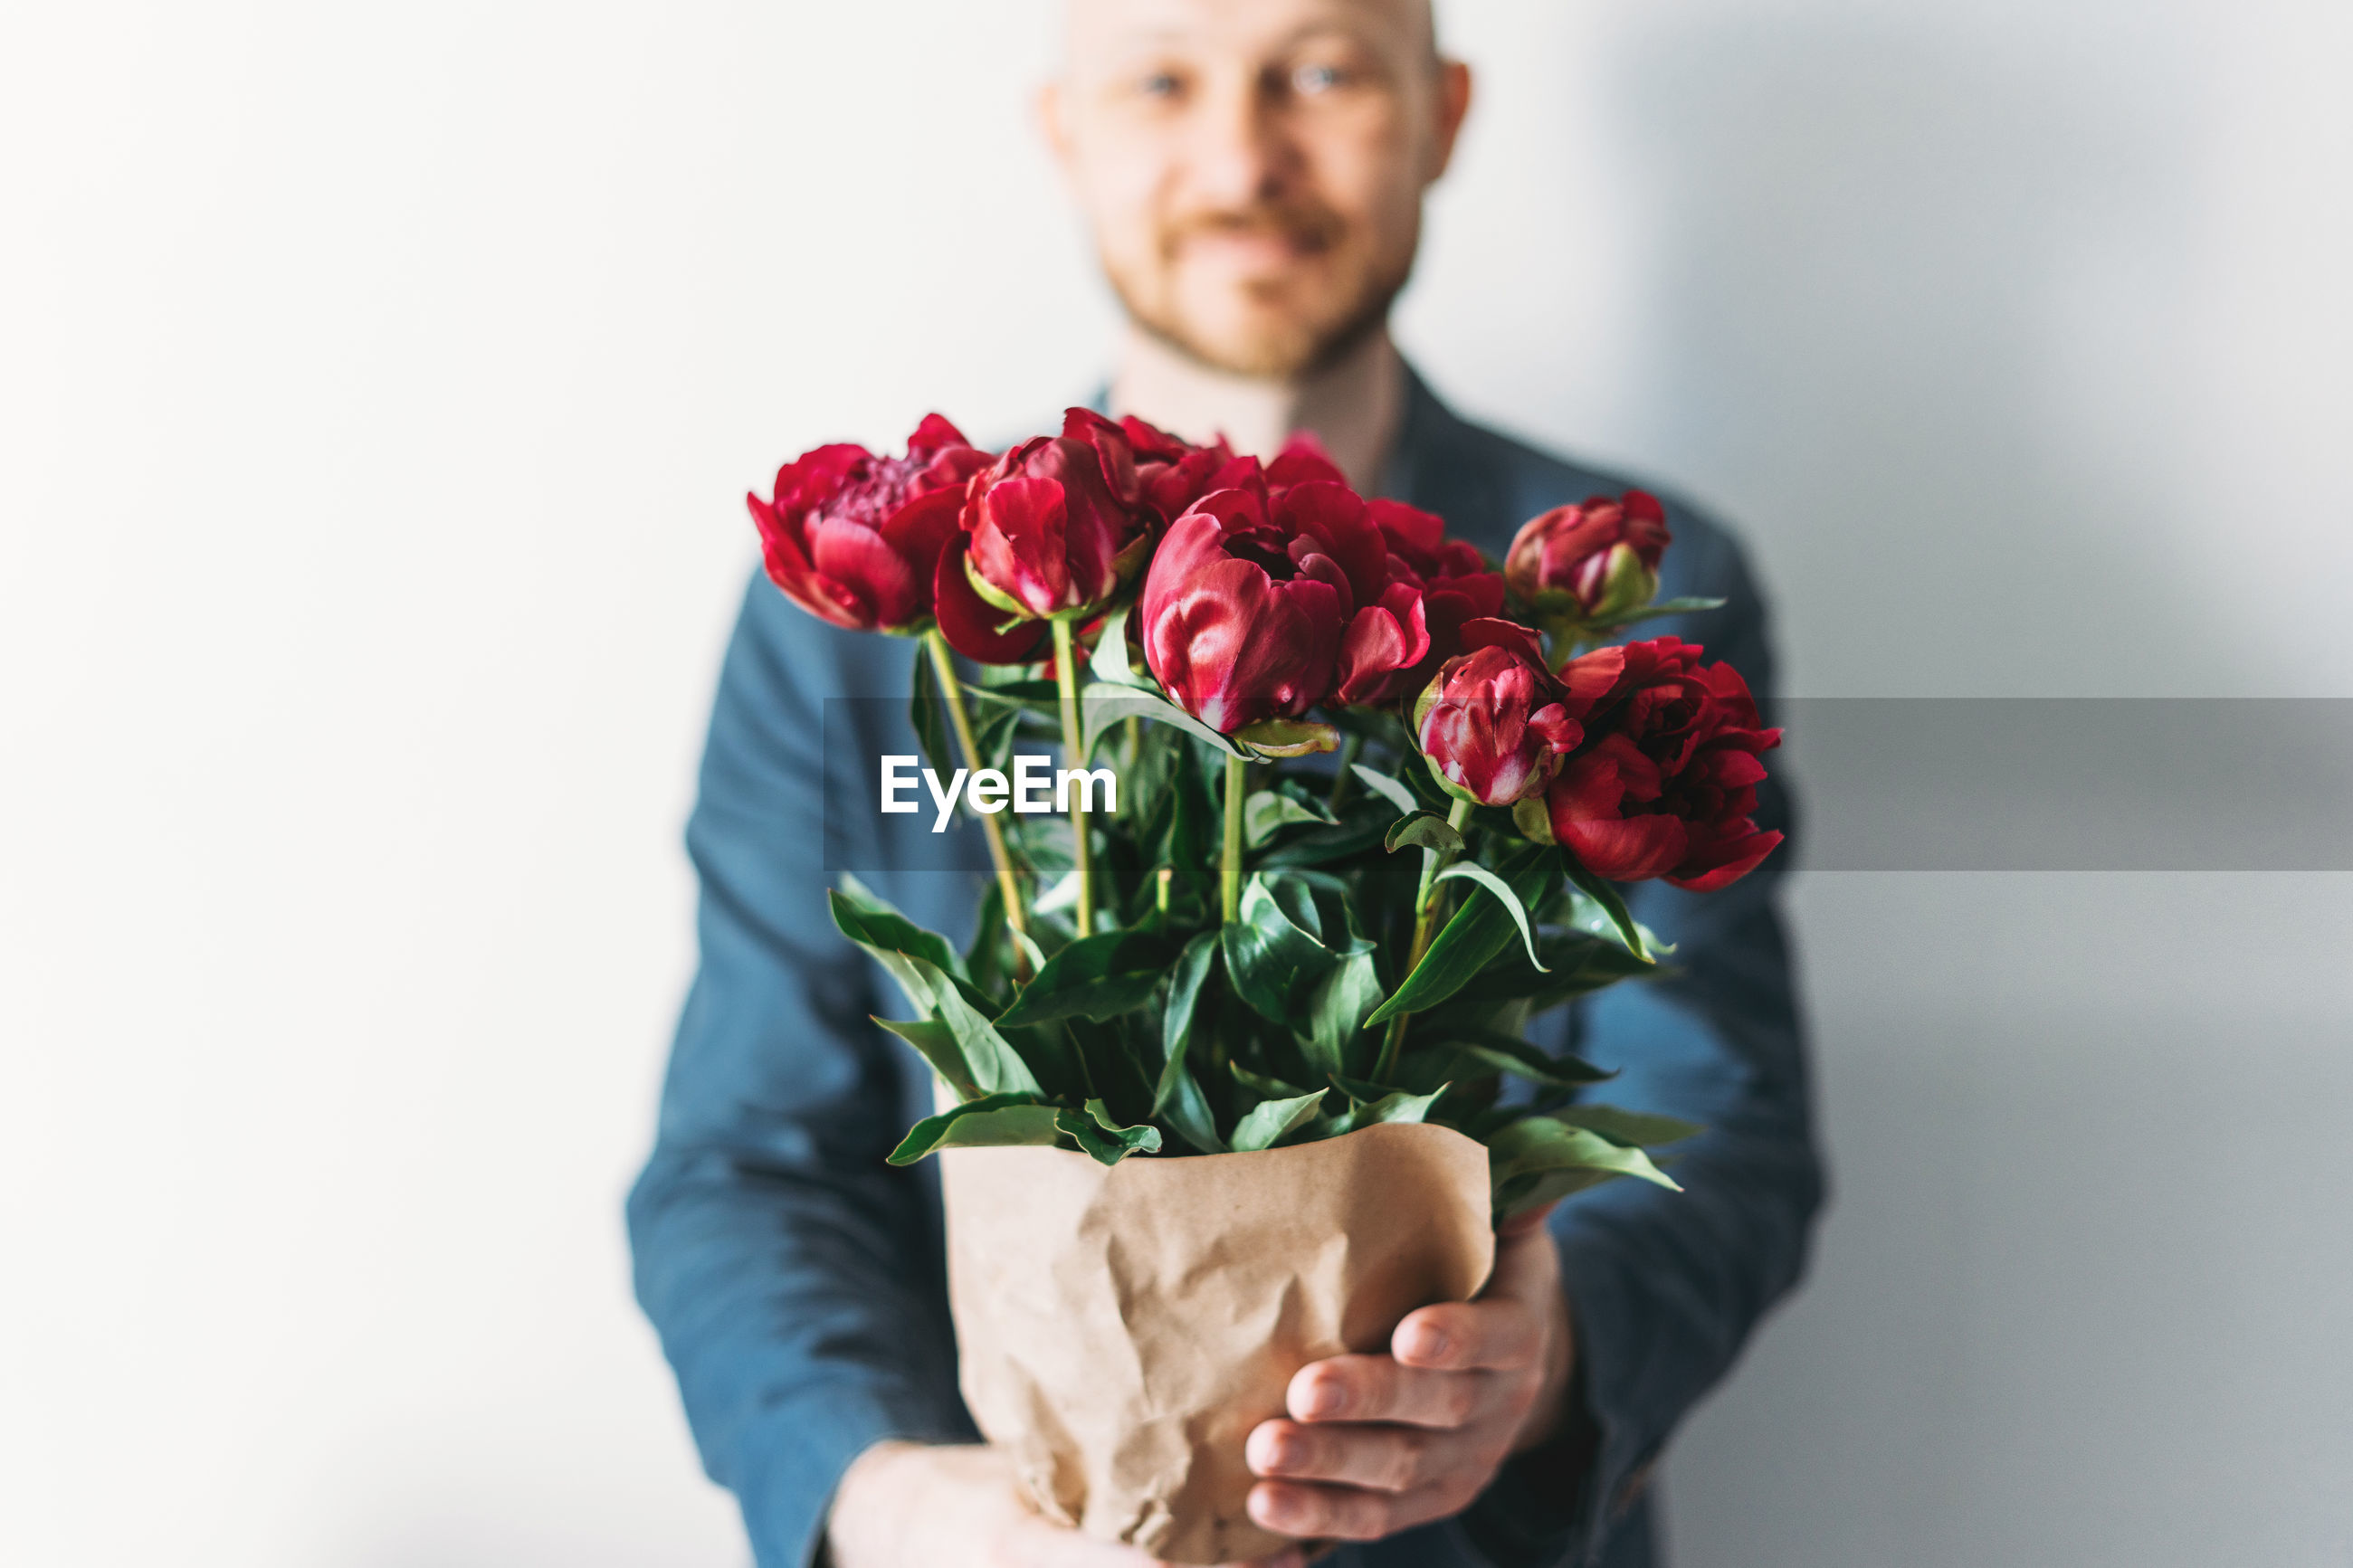 MAN HOLDING ROSE BOUQUET AGAINST WHITE BACKGROUND